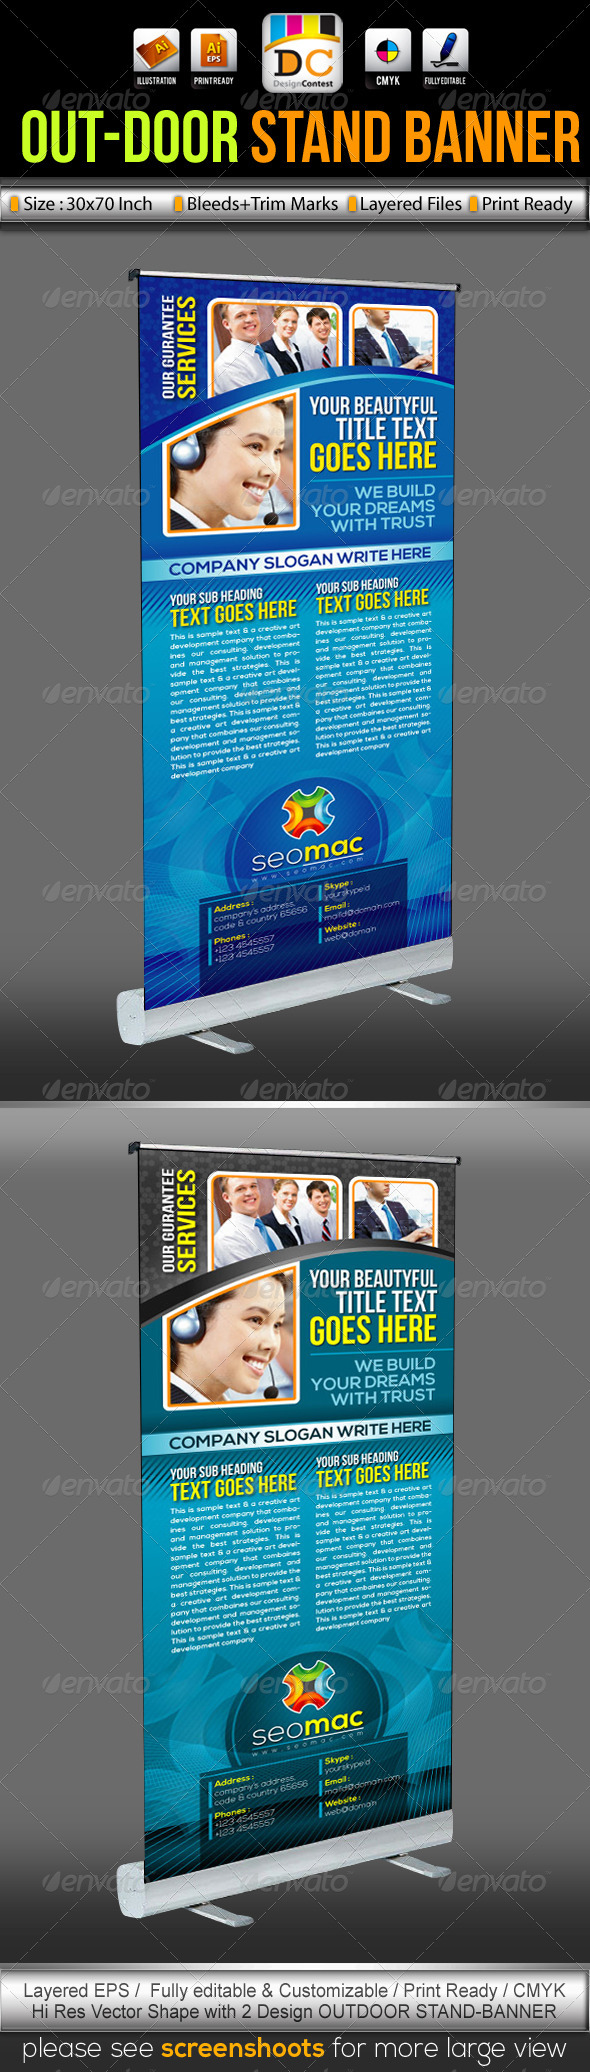 SeoMac Out-Door Stand Banner Sinage Templates - Signage Print Templates